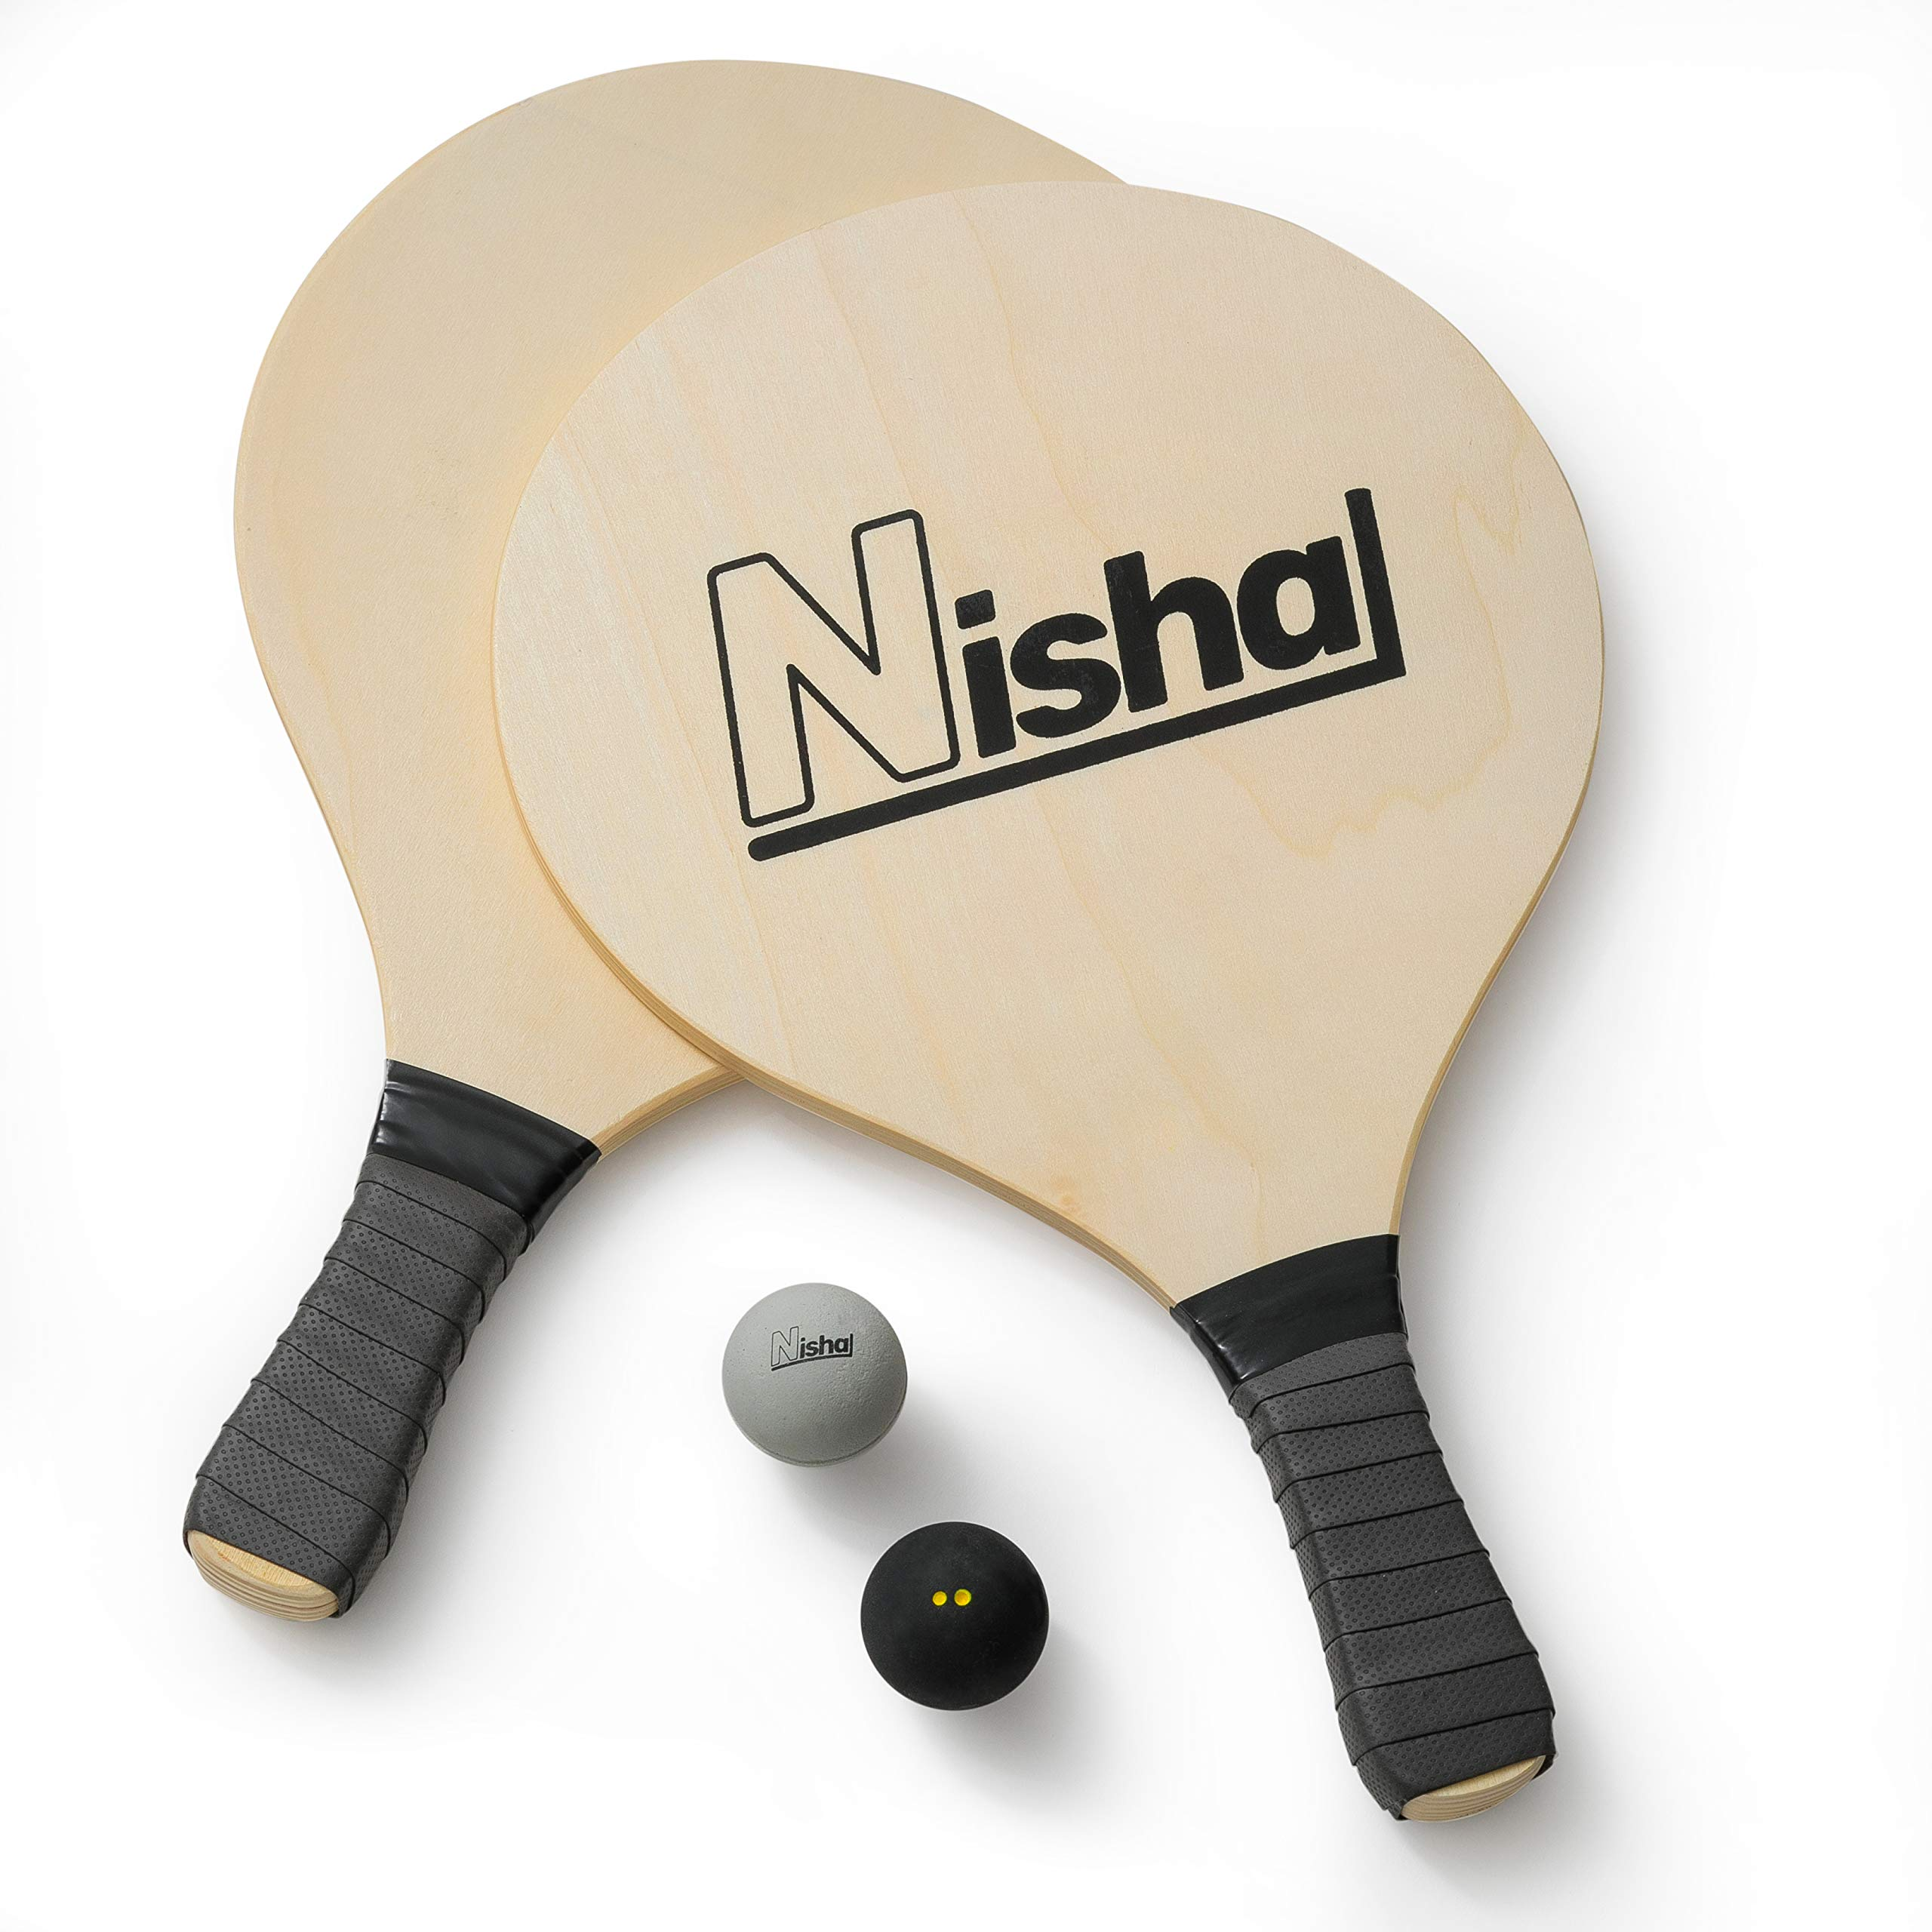 Paddle Ball Game - Smash Ball Set | Premium Set of 2 Smash Rackets, 2 Balls & Free Tennis Grips | Official Smashball Included | Thick Plastic Case